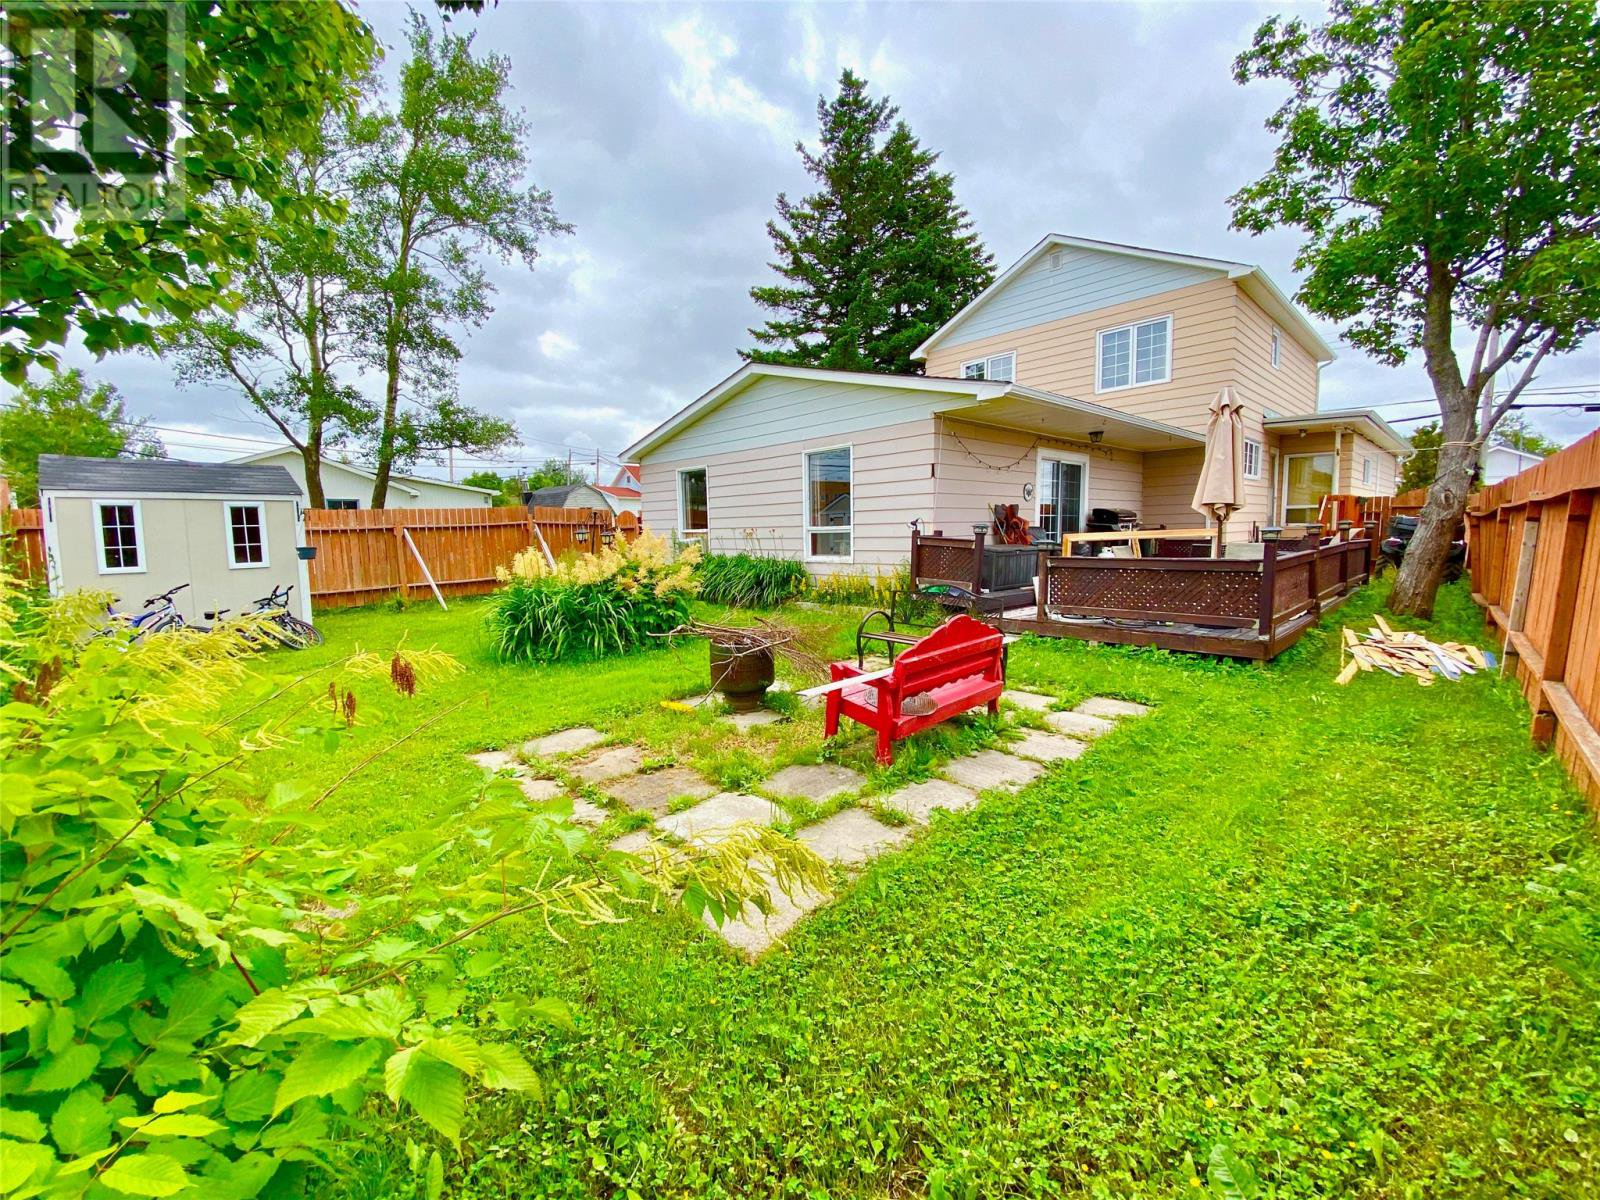 Main Photo: 5 Exploits Street in Lewisporte: House for sale : MLS®# 1224268